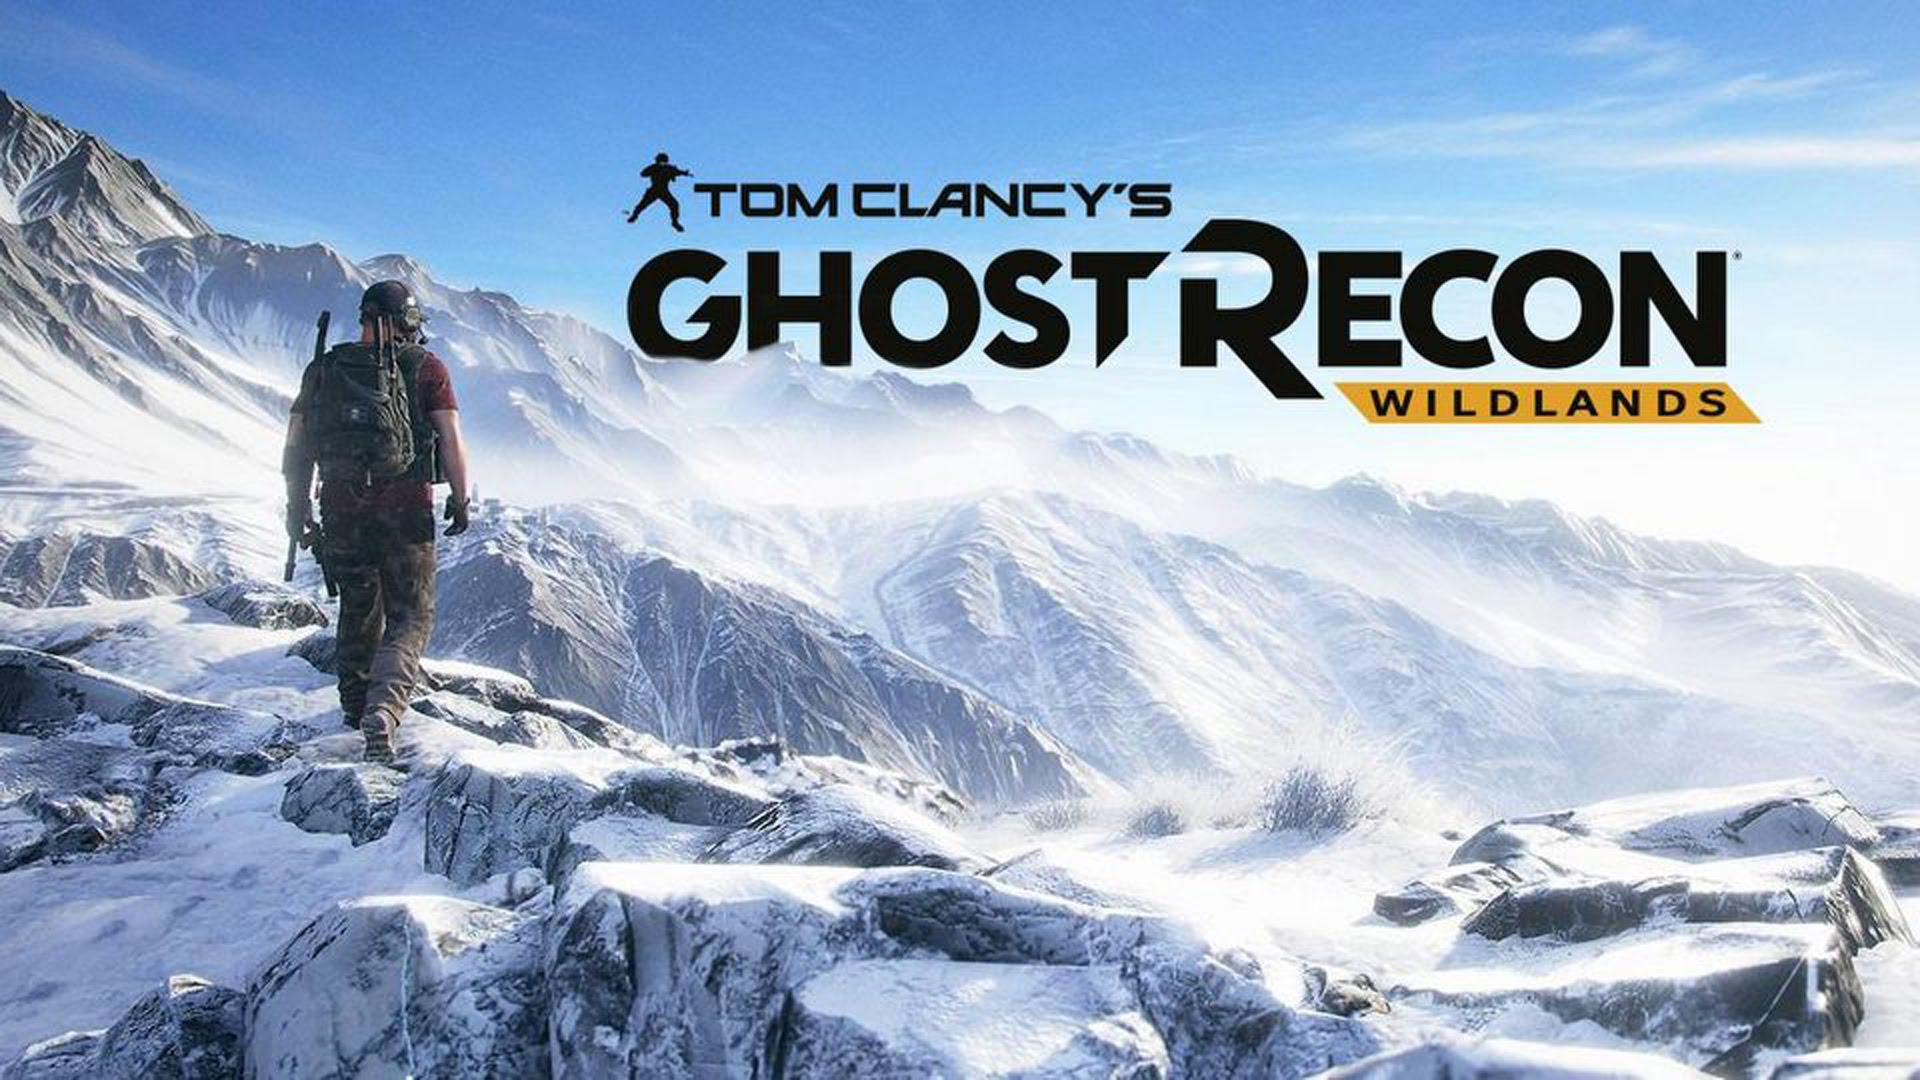 Ghost Recon Wildlands 4k Hd Desktop Wallpaper For Dual: Ubisoft Lança A Terceira Expansão Gratuita De Tom Clancy's